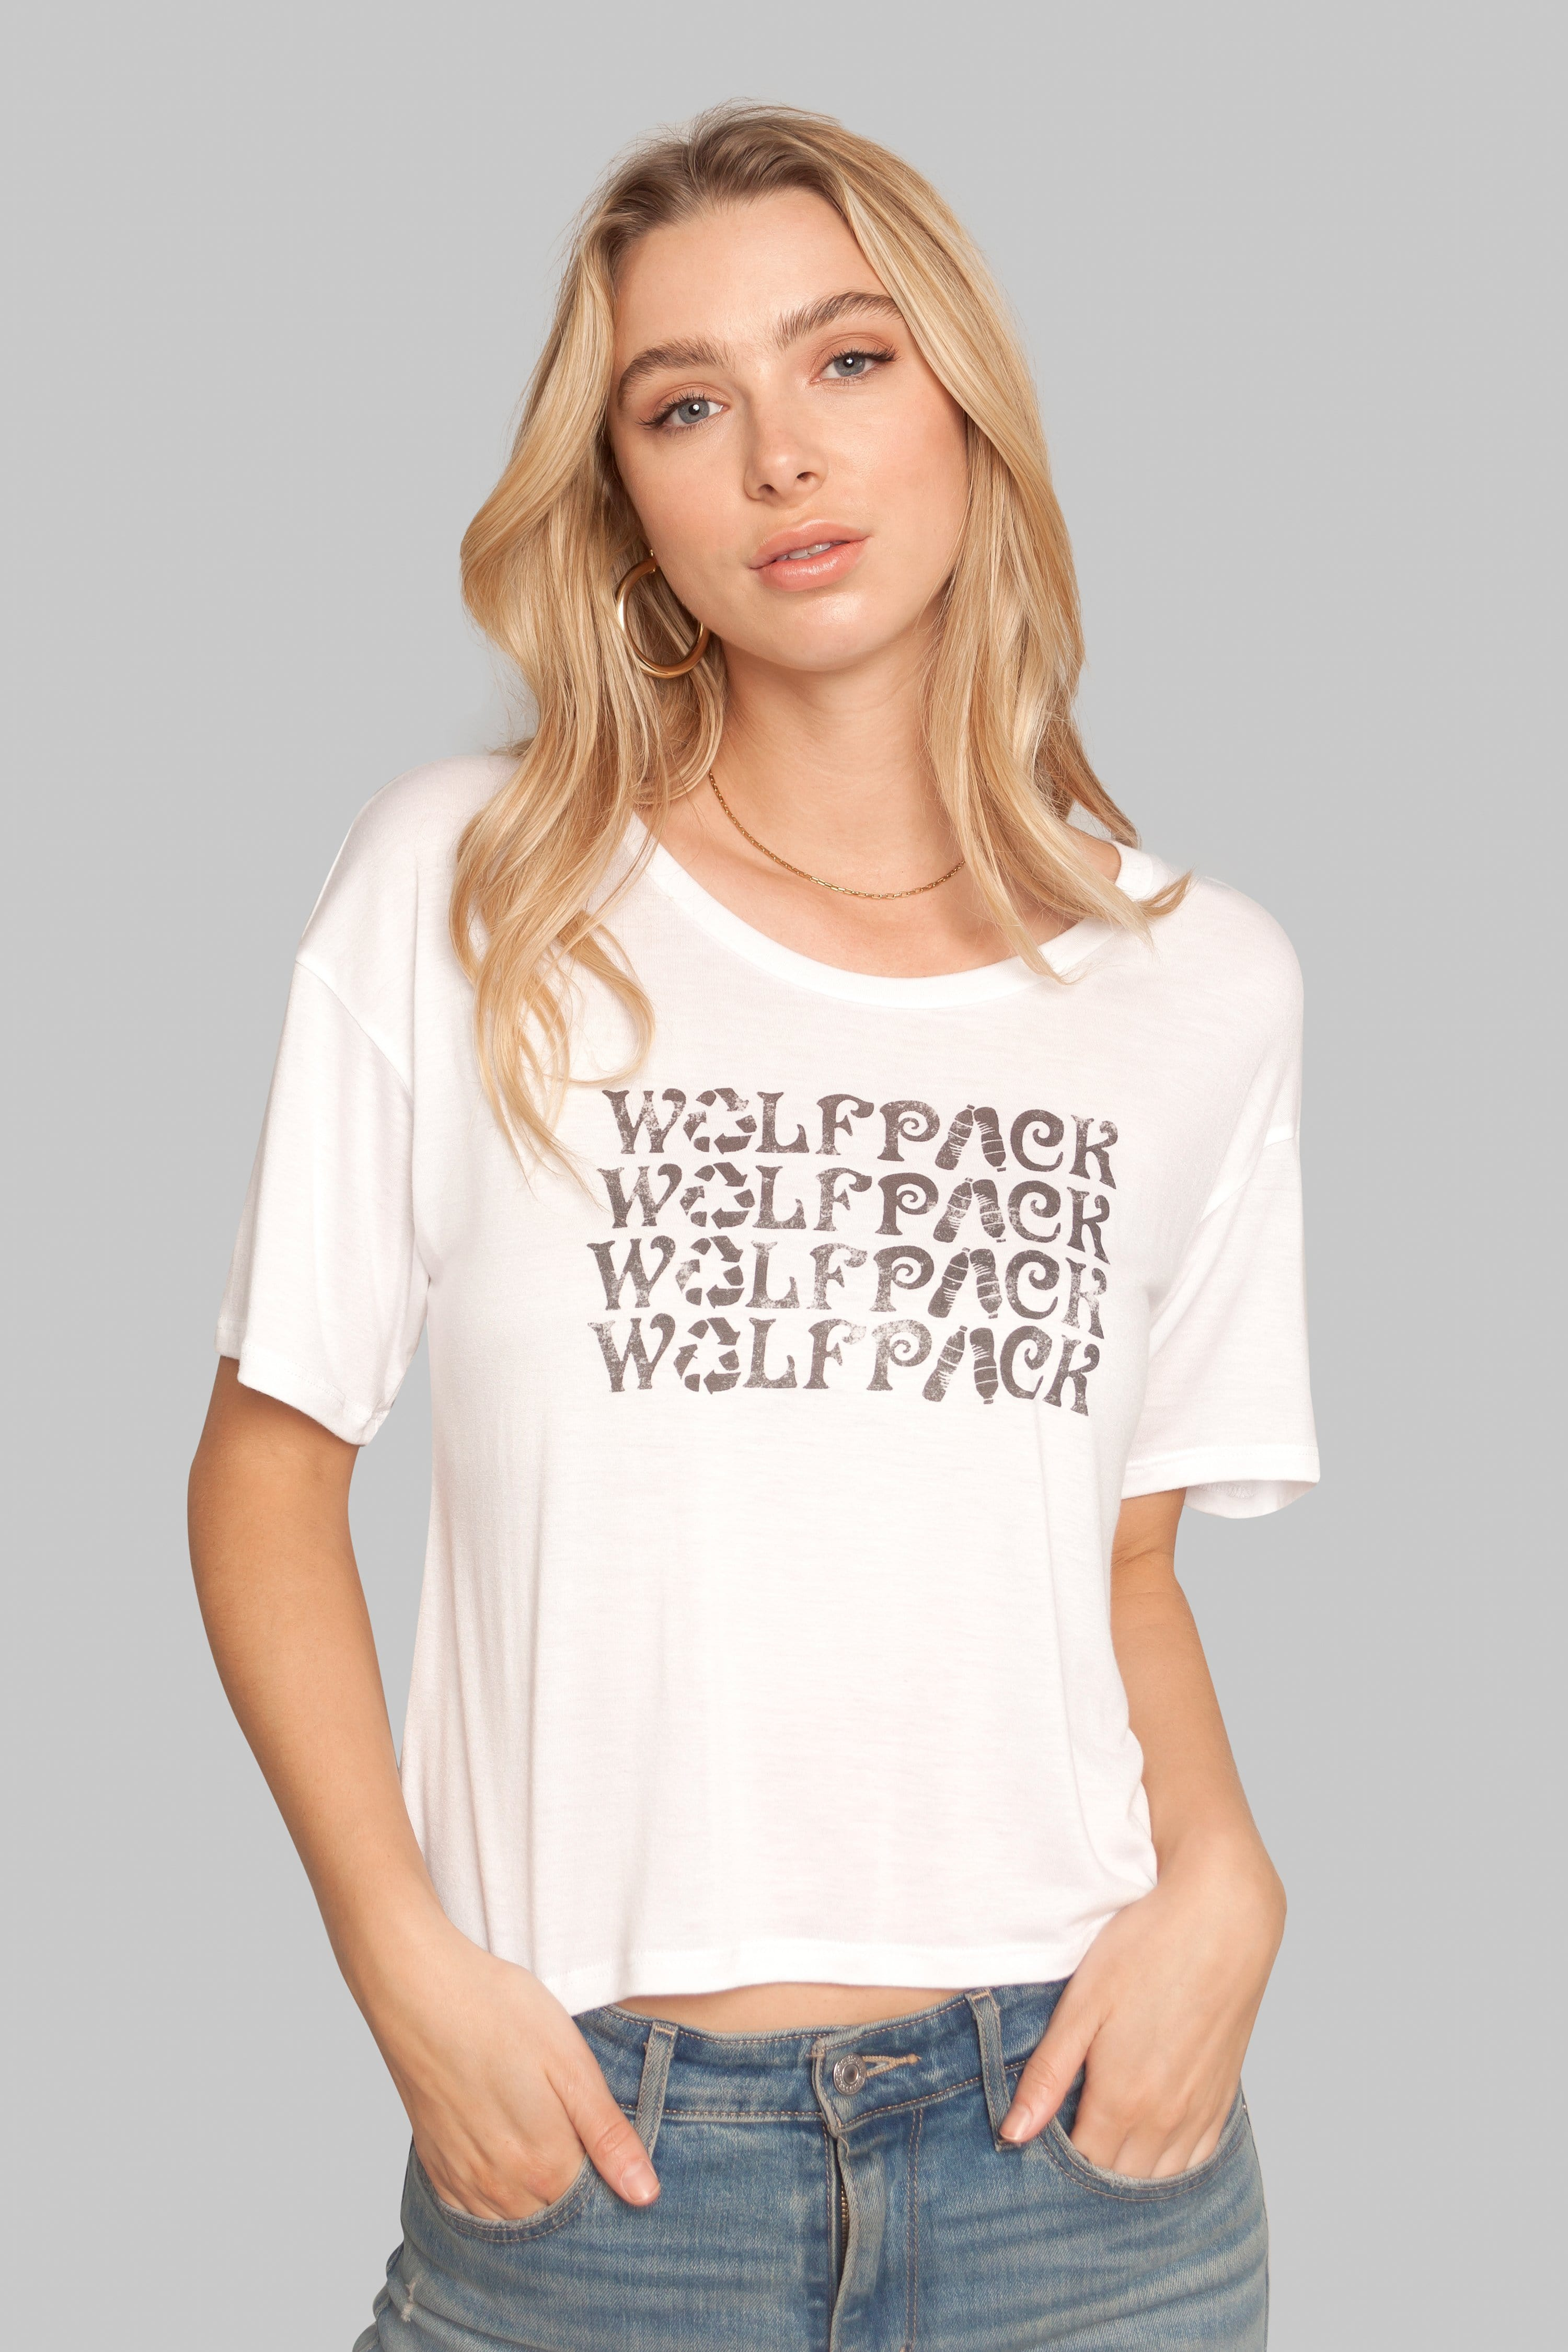 Wolfpack Graphic Tee Sustainable Graphic T-Shirt